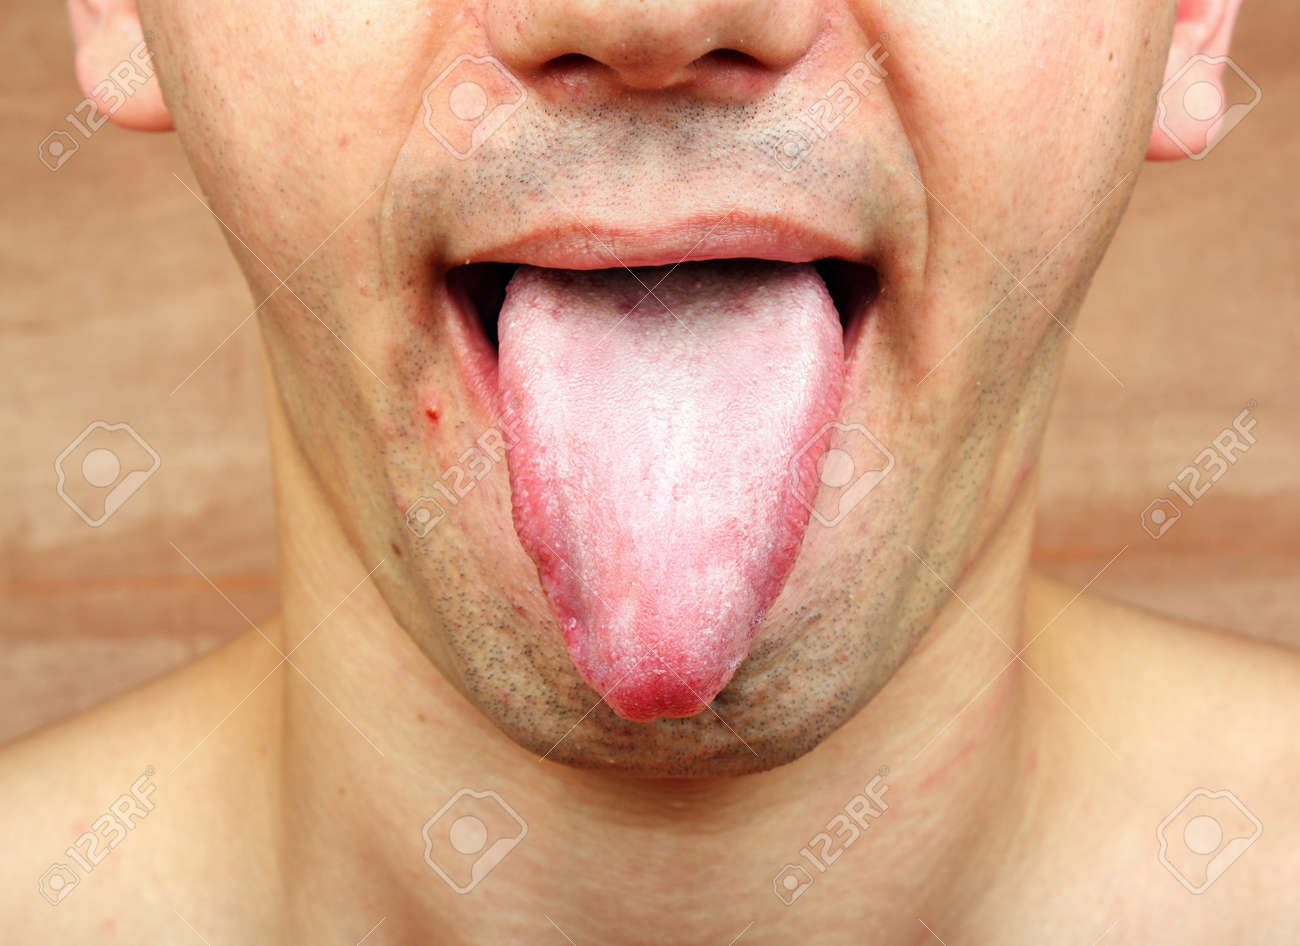 pictures of mouth and tongue disease entusacom - 800×450